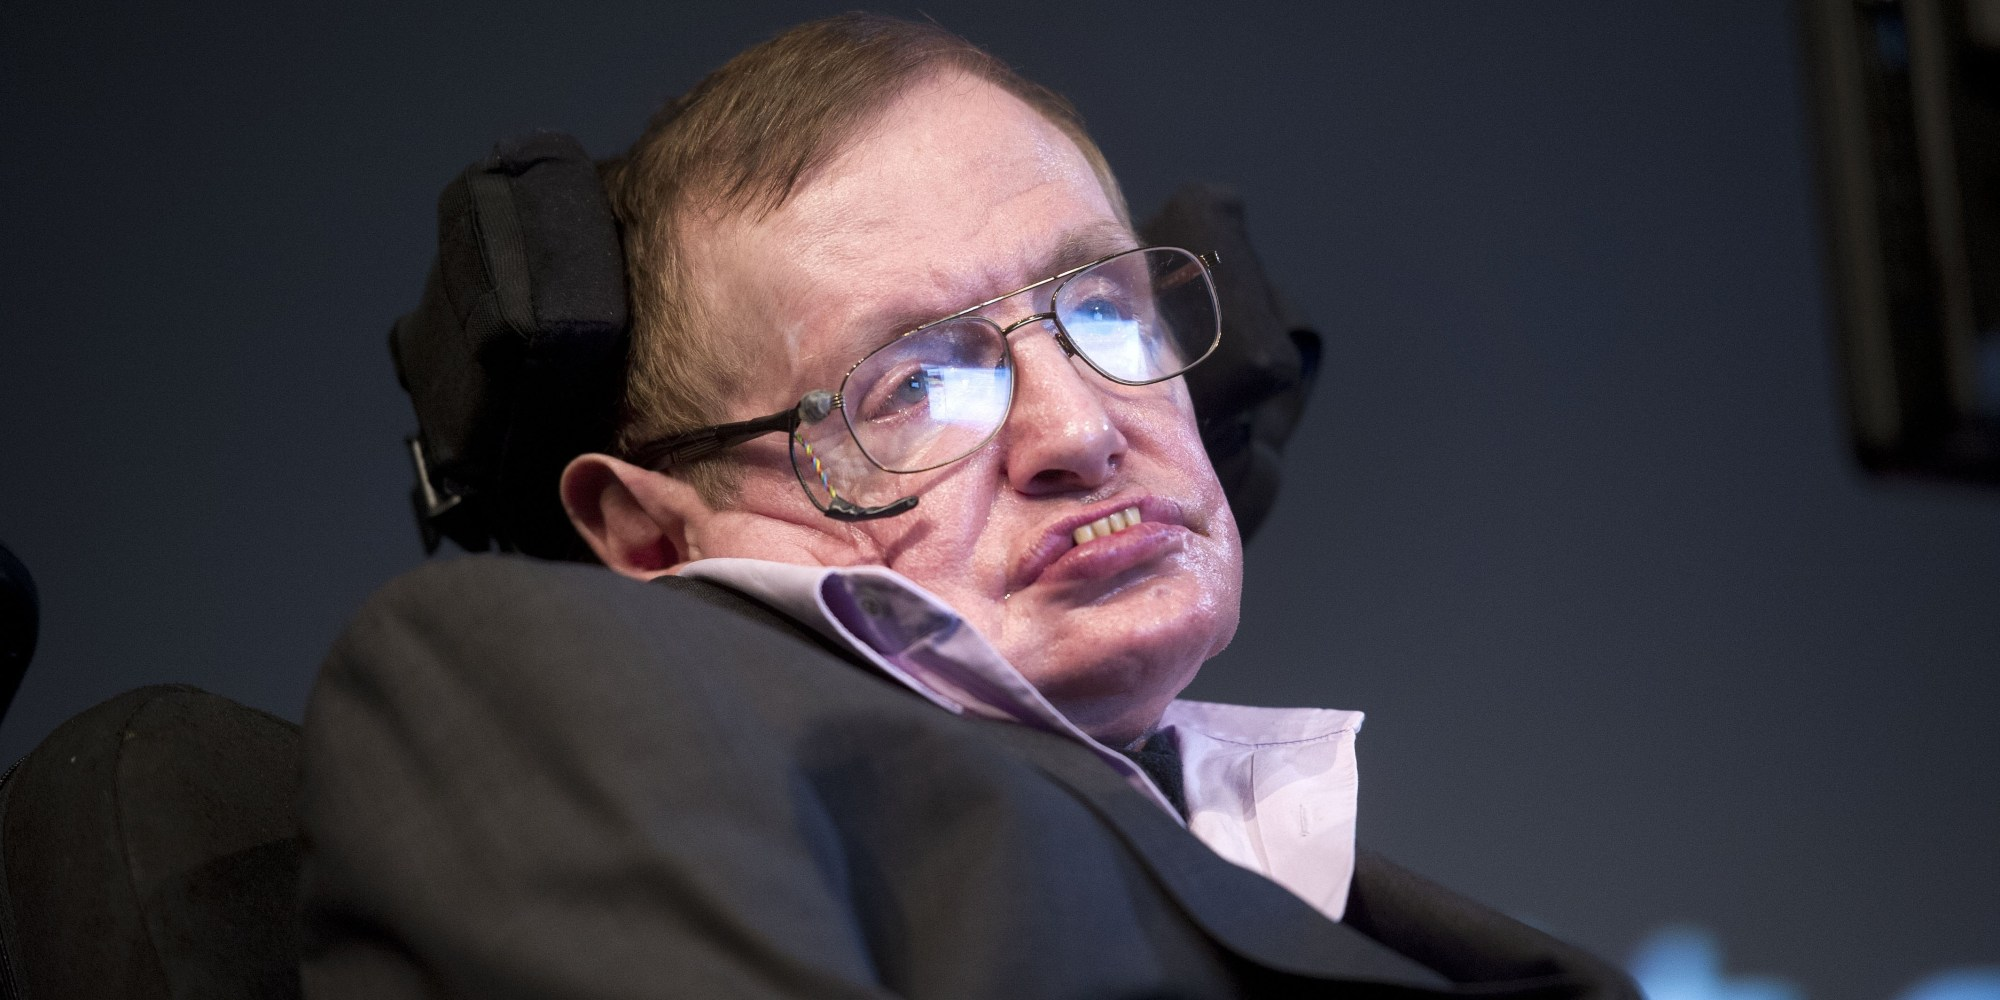 Stephen Hawking Calls Aggression The Human Failing He'd ... Stephen Hawking